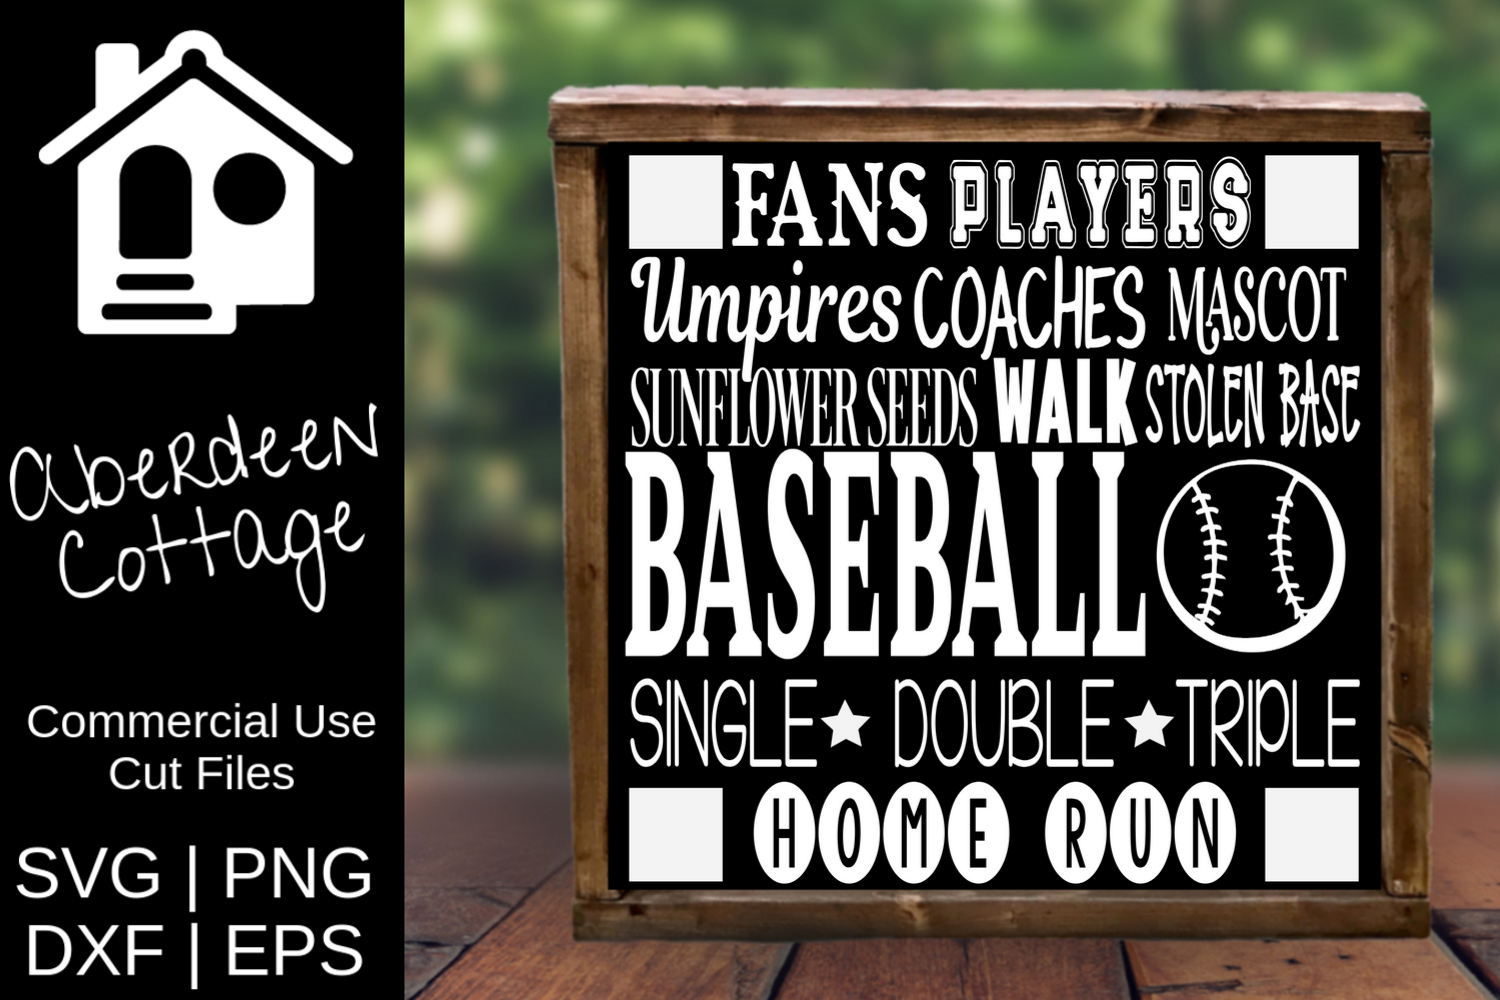 Baseball Expressions SVG   PNG   DXF   EPS example image 1